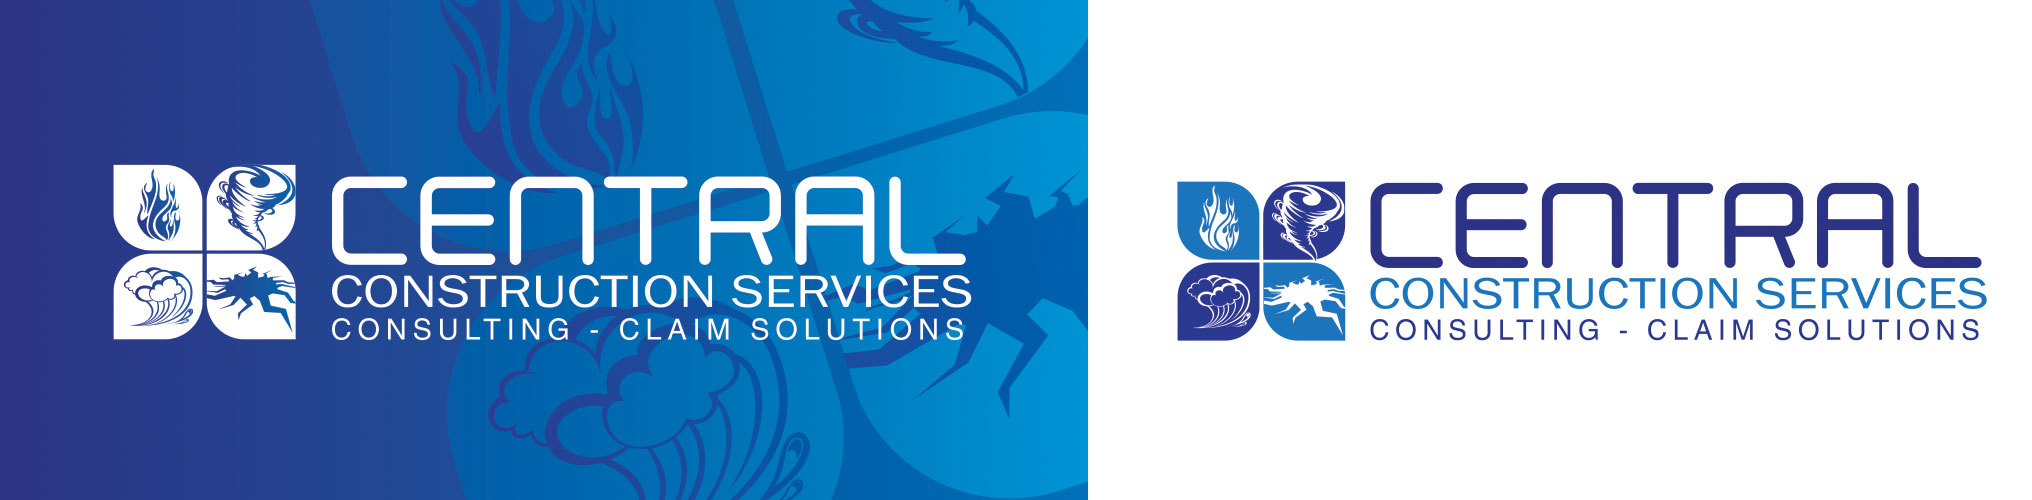 Central Construction Services Brand Development and Logo Design